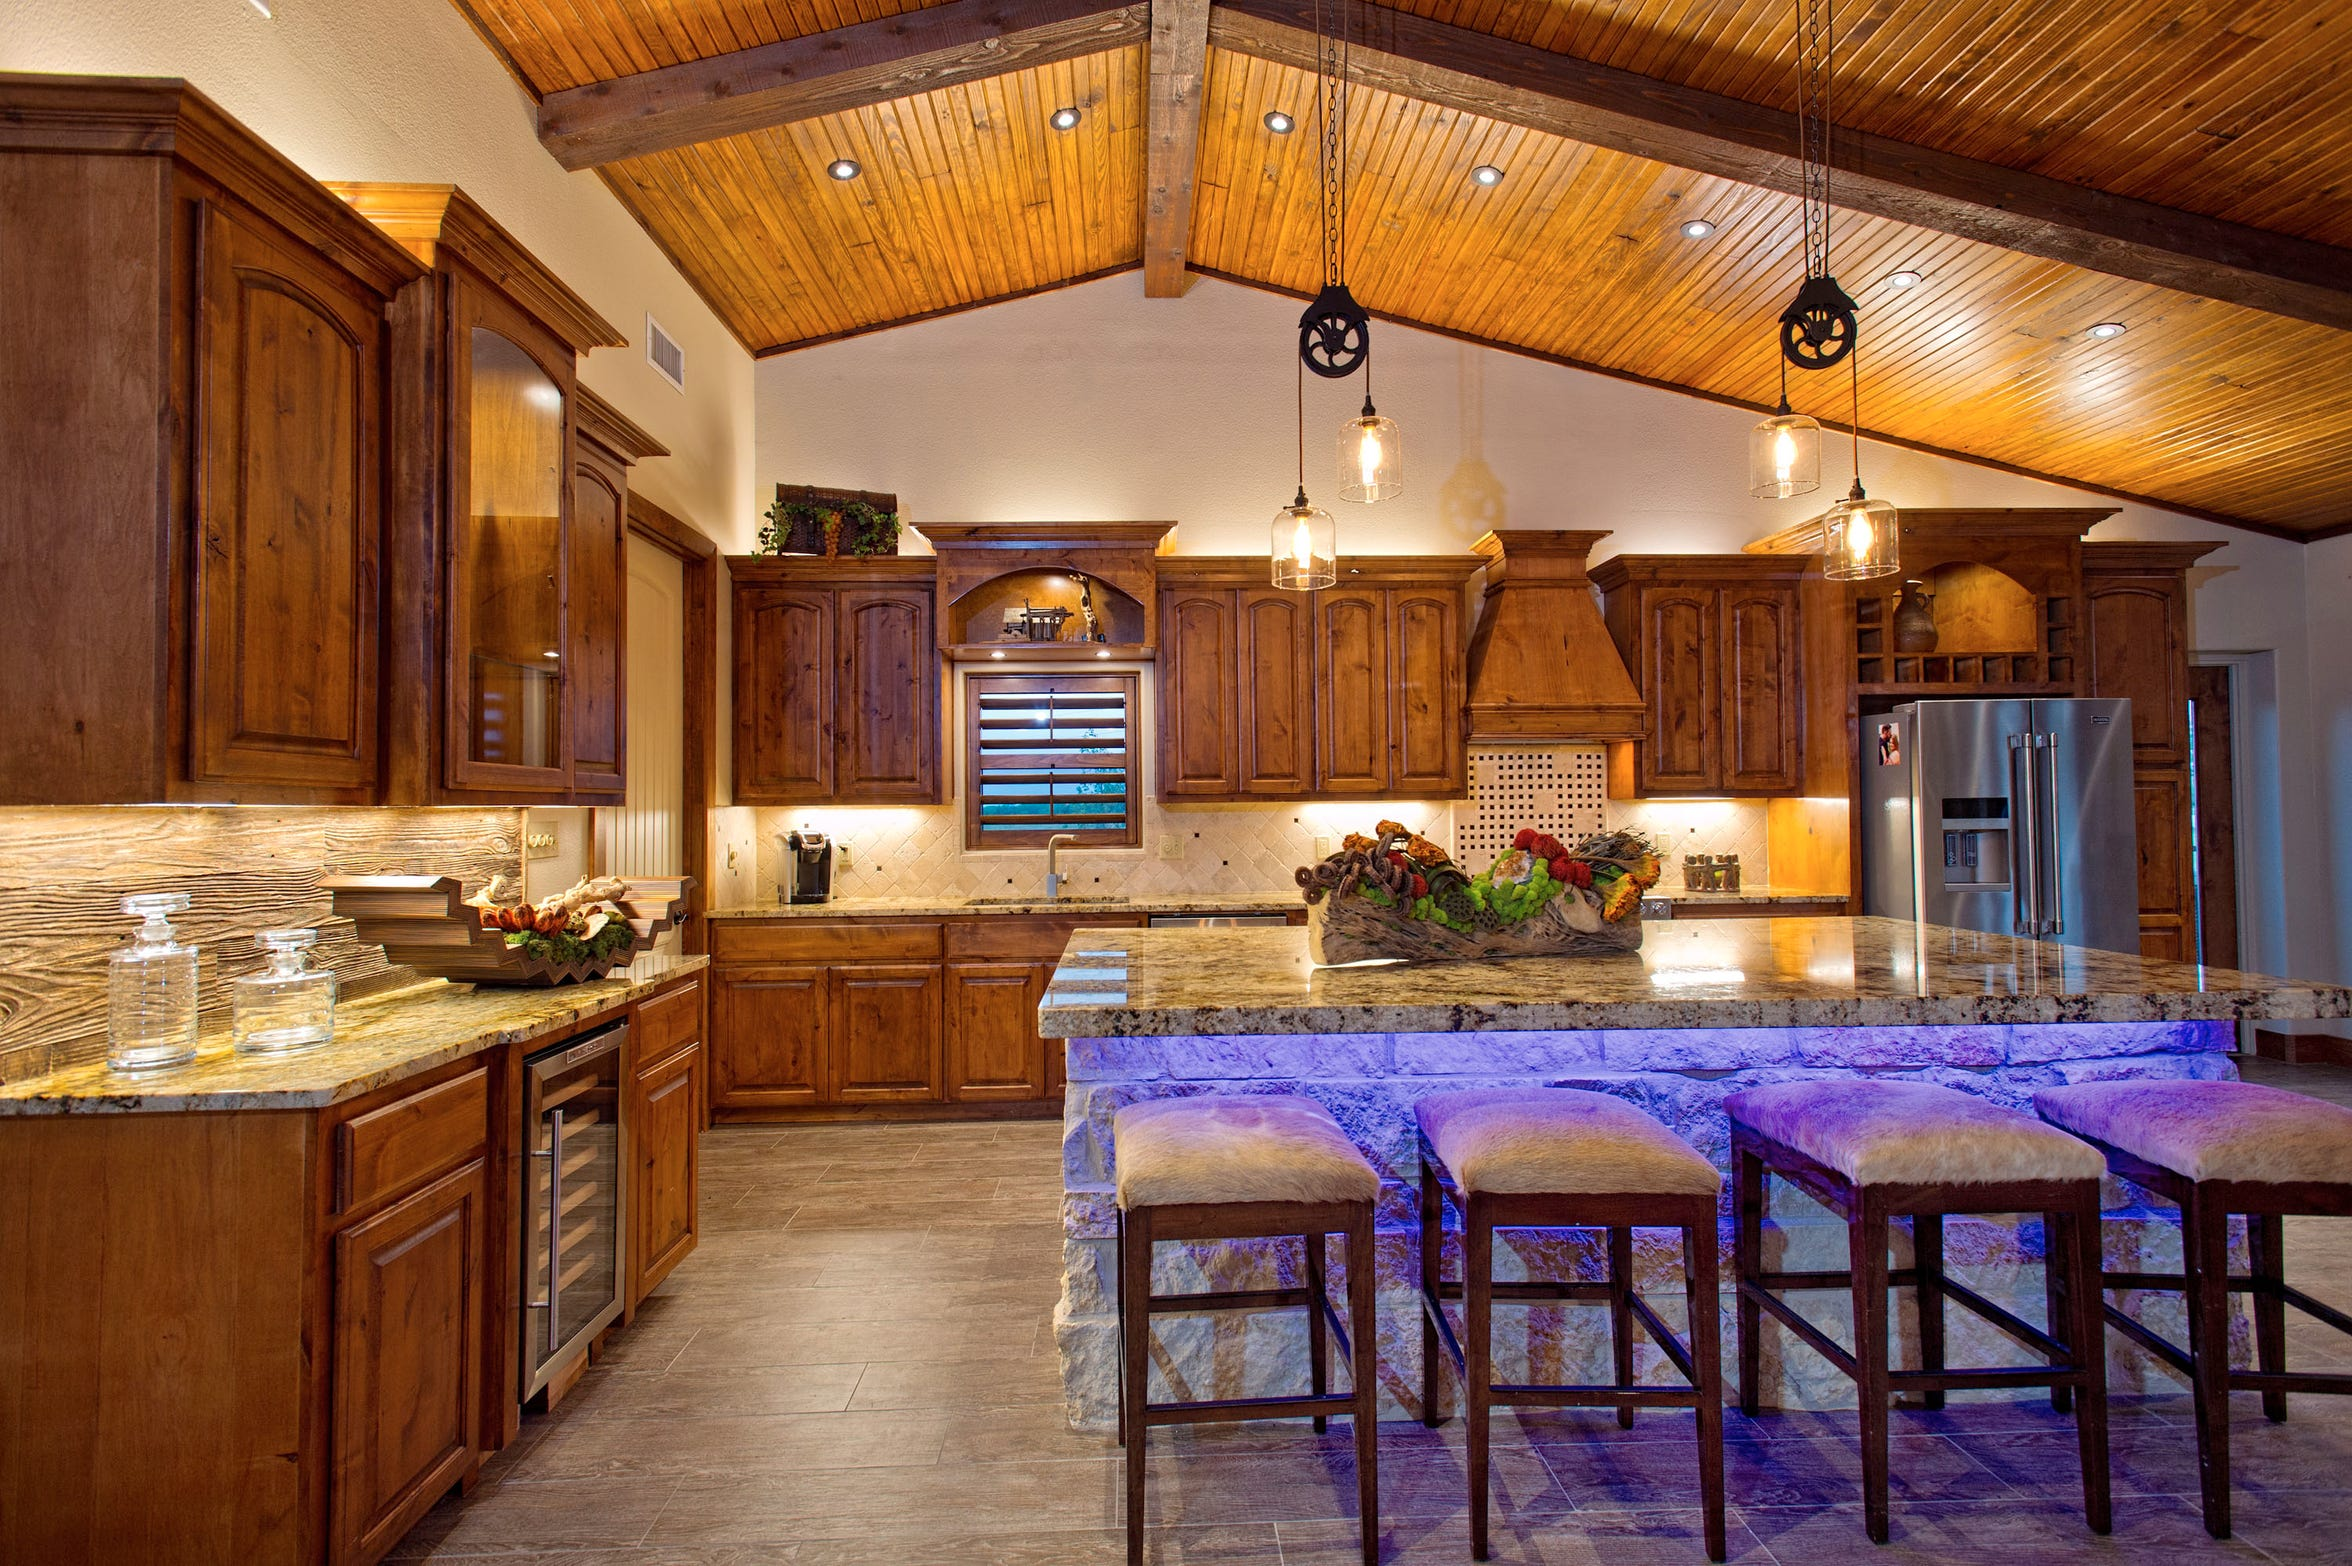 The stunning kitchen features a giant double stacked granite island with a stone base, wood beamed vaulted ceiling, granite counters, gorgeous custom knotty alder cabinets and dramatic lighting.